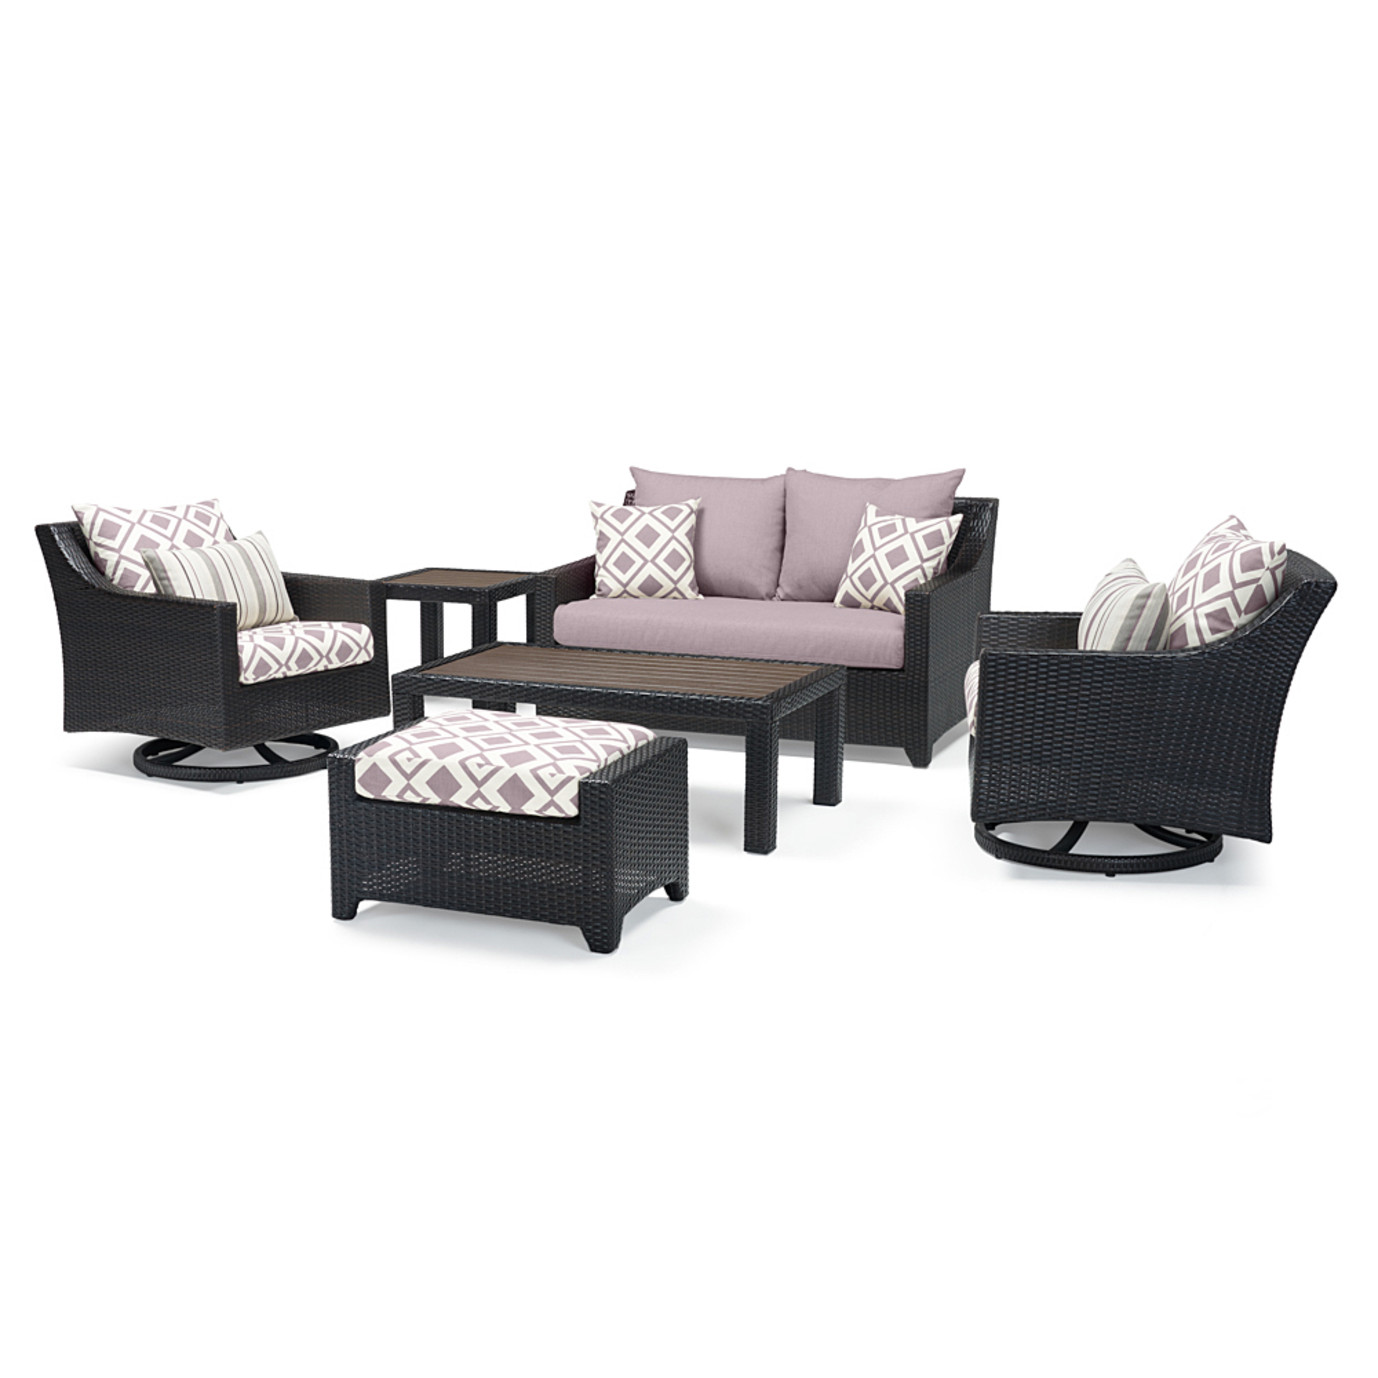 Deco™ Deluxe 6pc Love & Motion Club Set - Wisteria Lavender